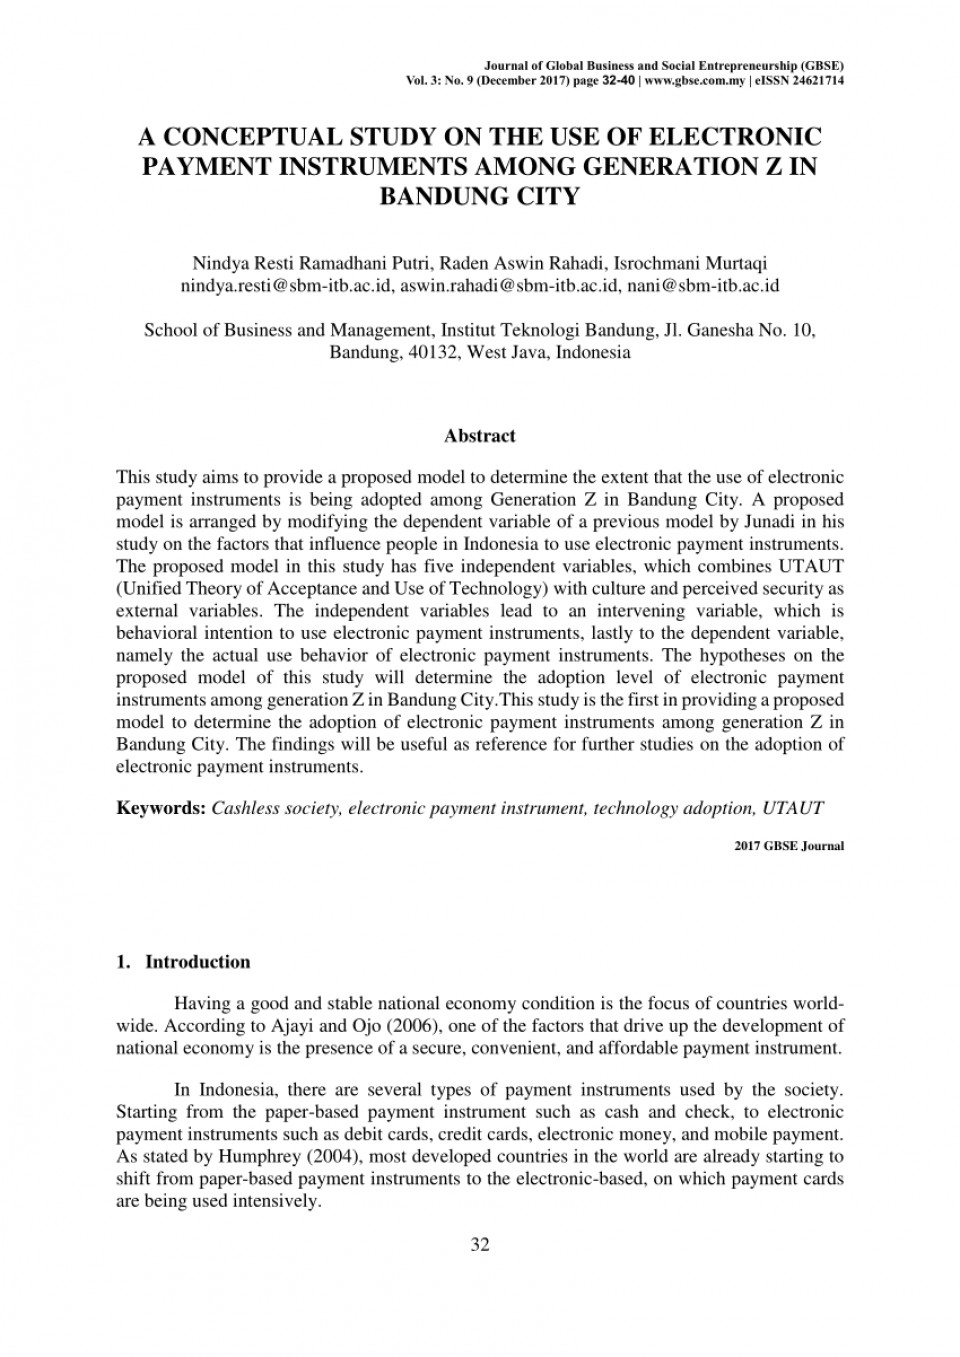 010 Largepreview Research Paper Cash To Cashless Rare Economy 960